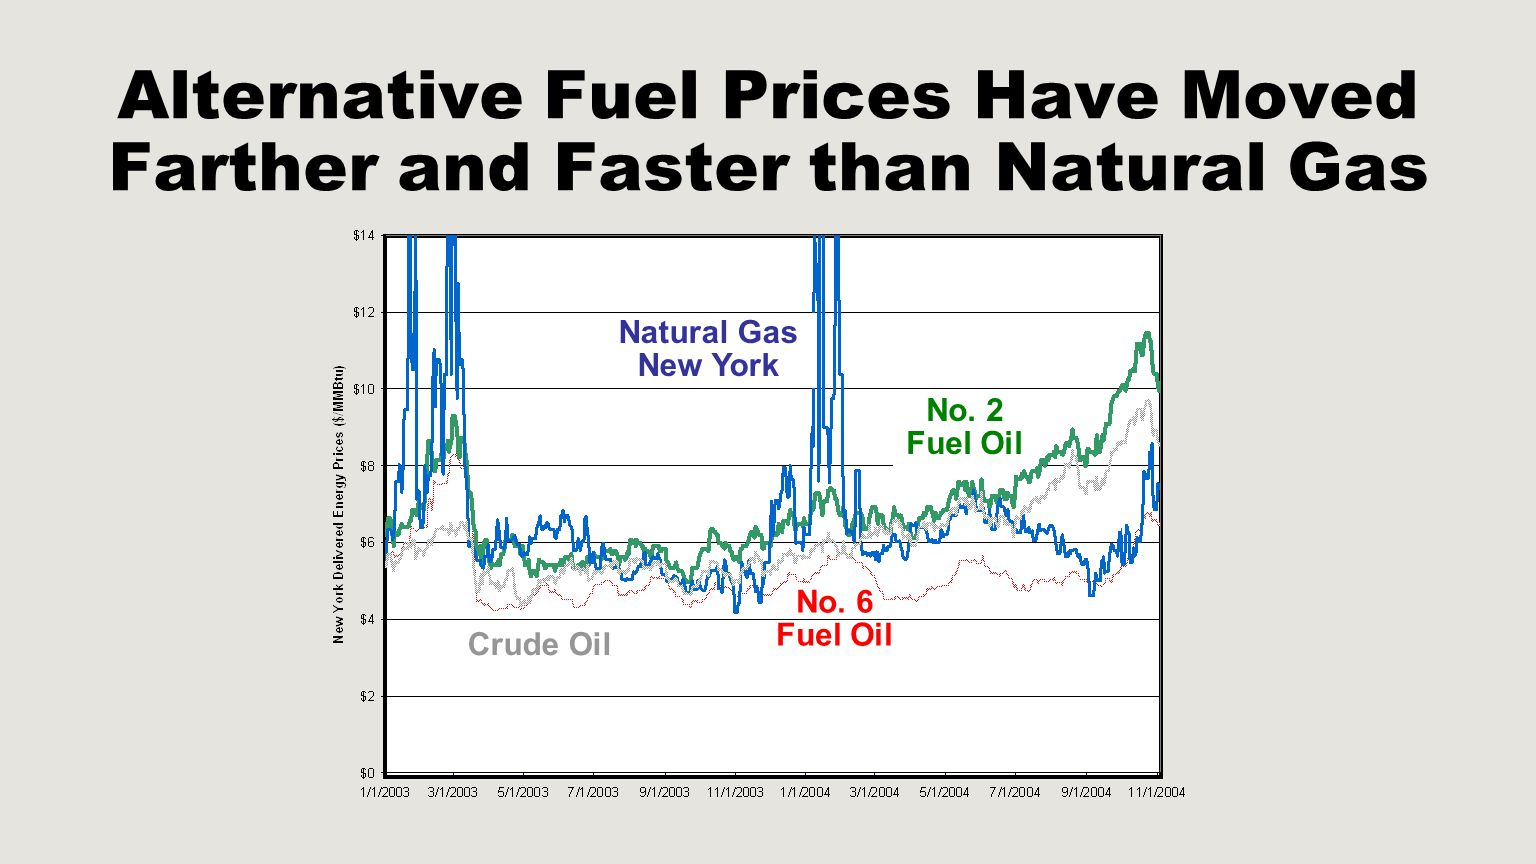 Alternative Fuel Prices Have Moved Farther and Faster than Natural Gas Natural Gas New York No. 6 Fuel Oil Crude Oil No. 2 Fuel Oil